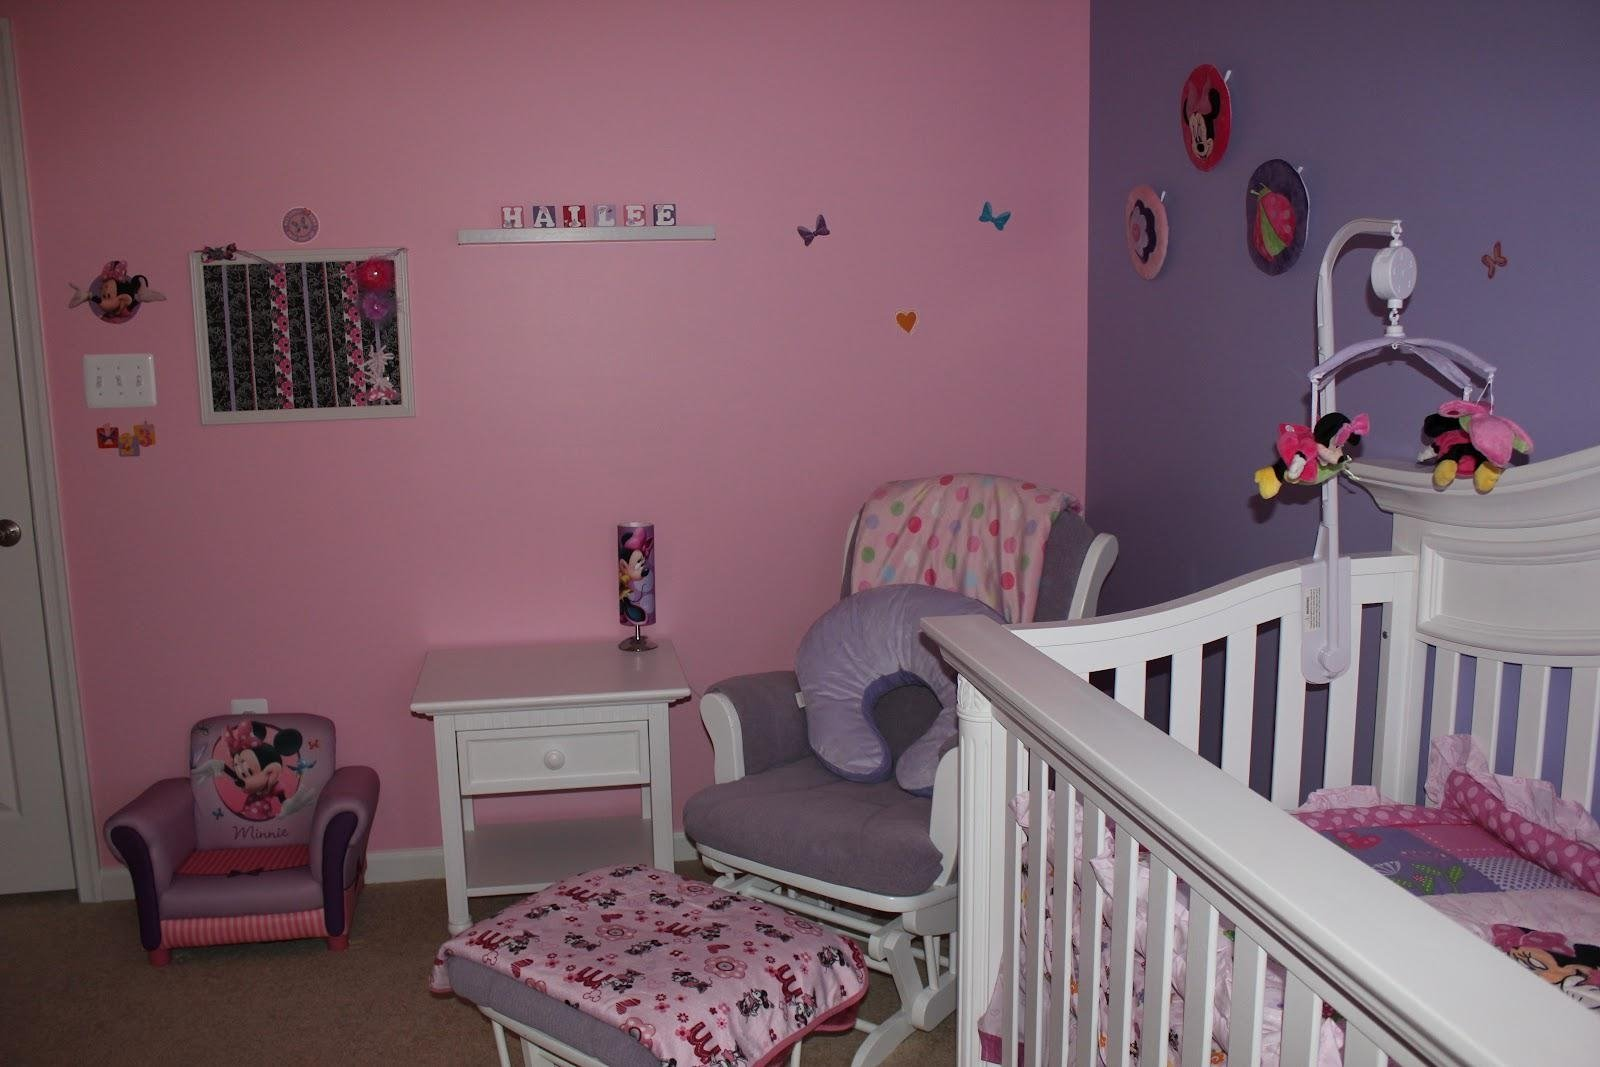 10 Stylish Minnie Mouse Room Decor Ideas bedroom minnie mouse room decor ideas disney minnie mouse toddler 2020